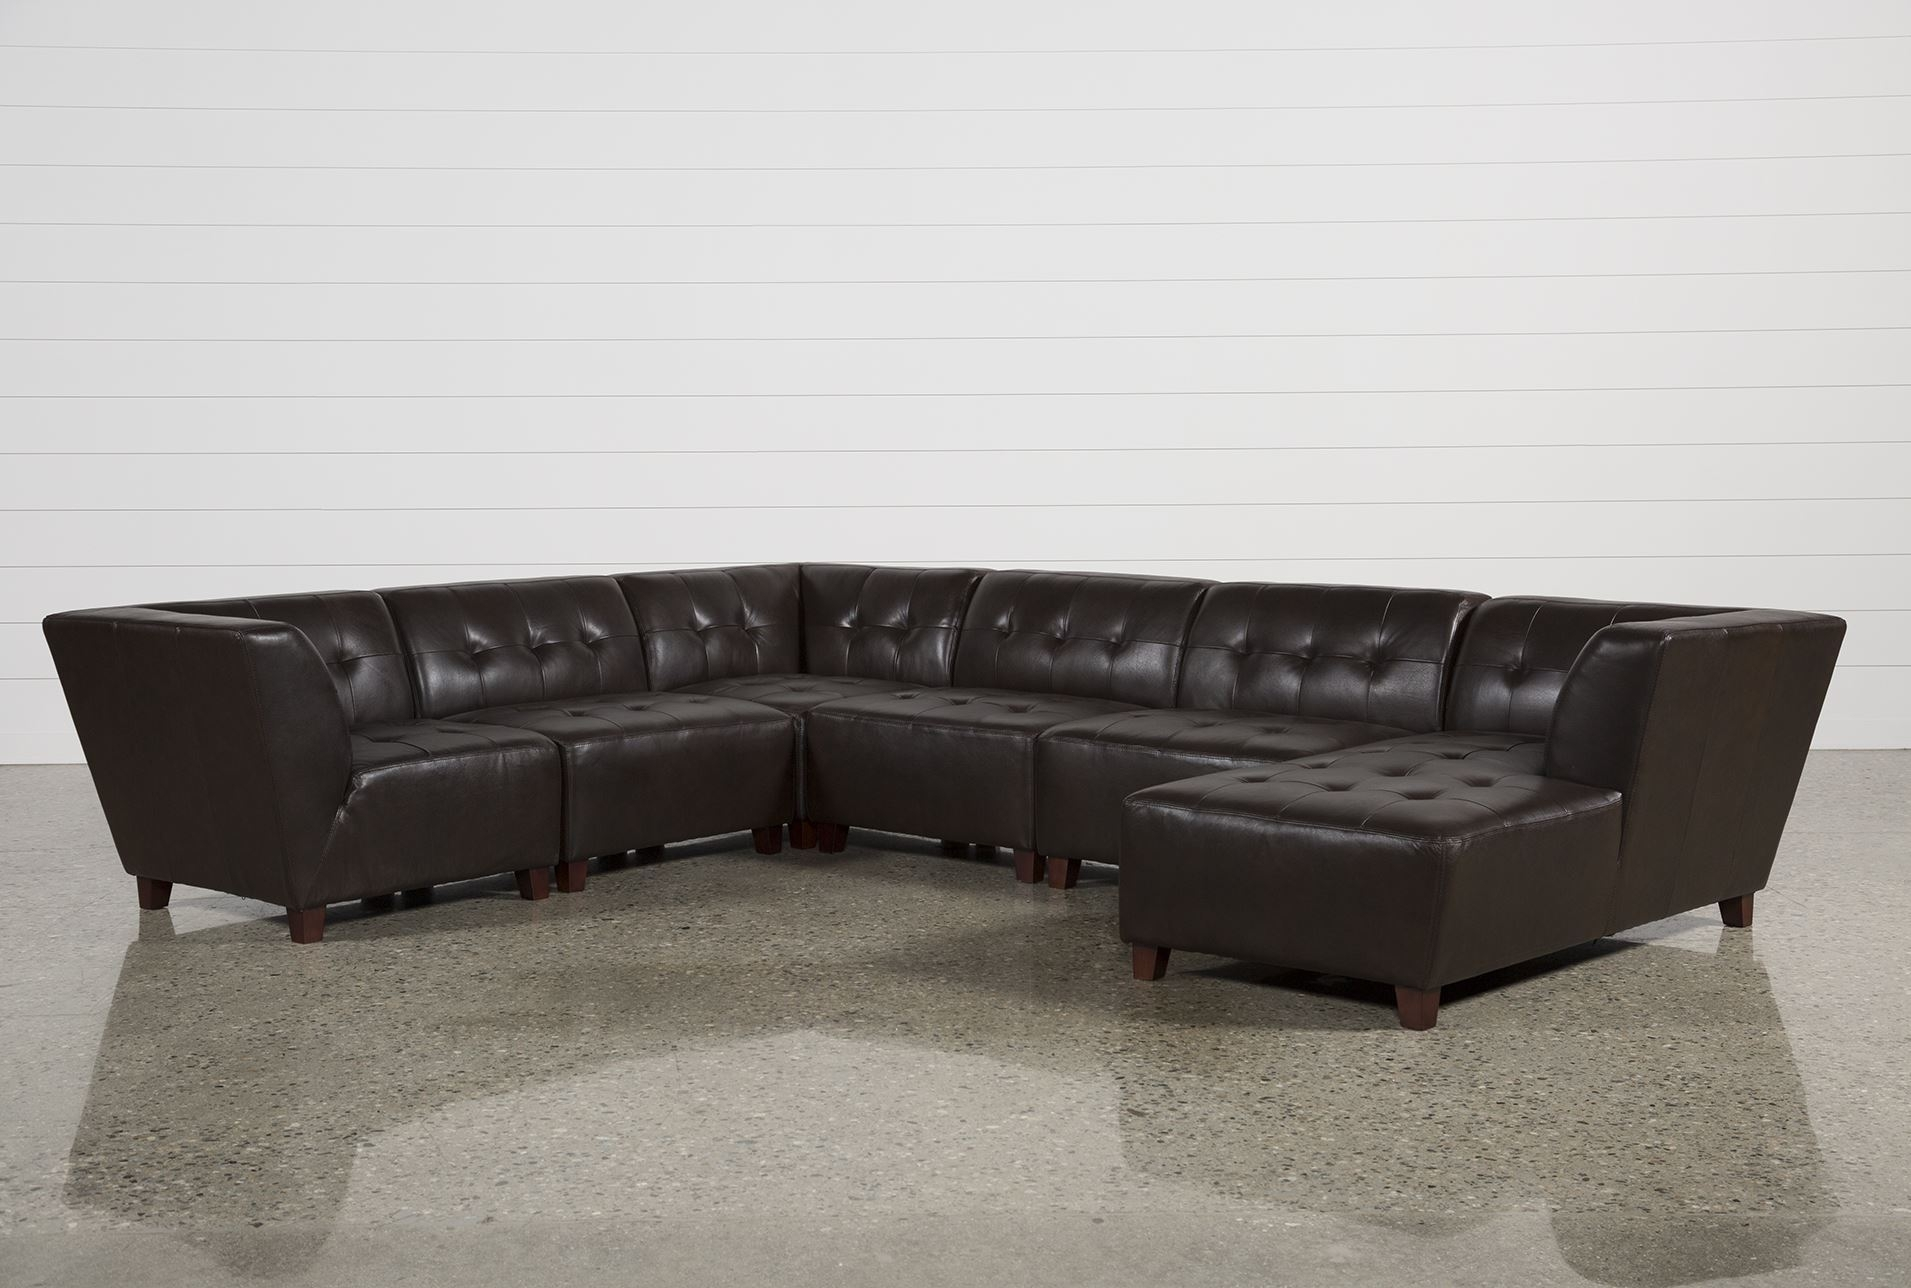 6 Piece Leather Sectional Sofa - Cleanupflorida with regard to 6 Piece Leather Sectional Sofas